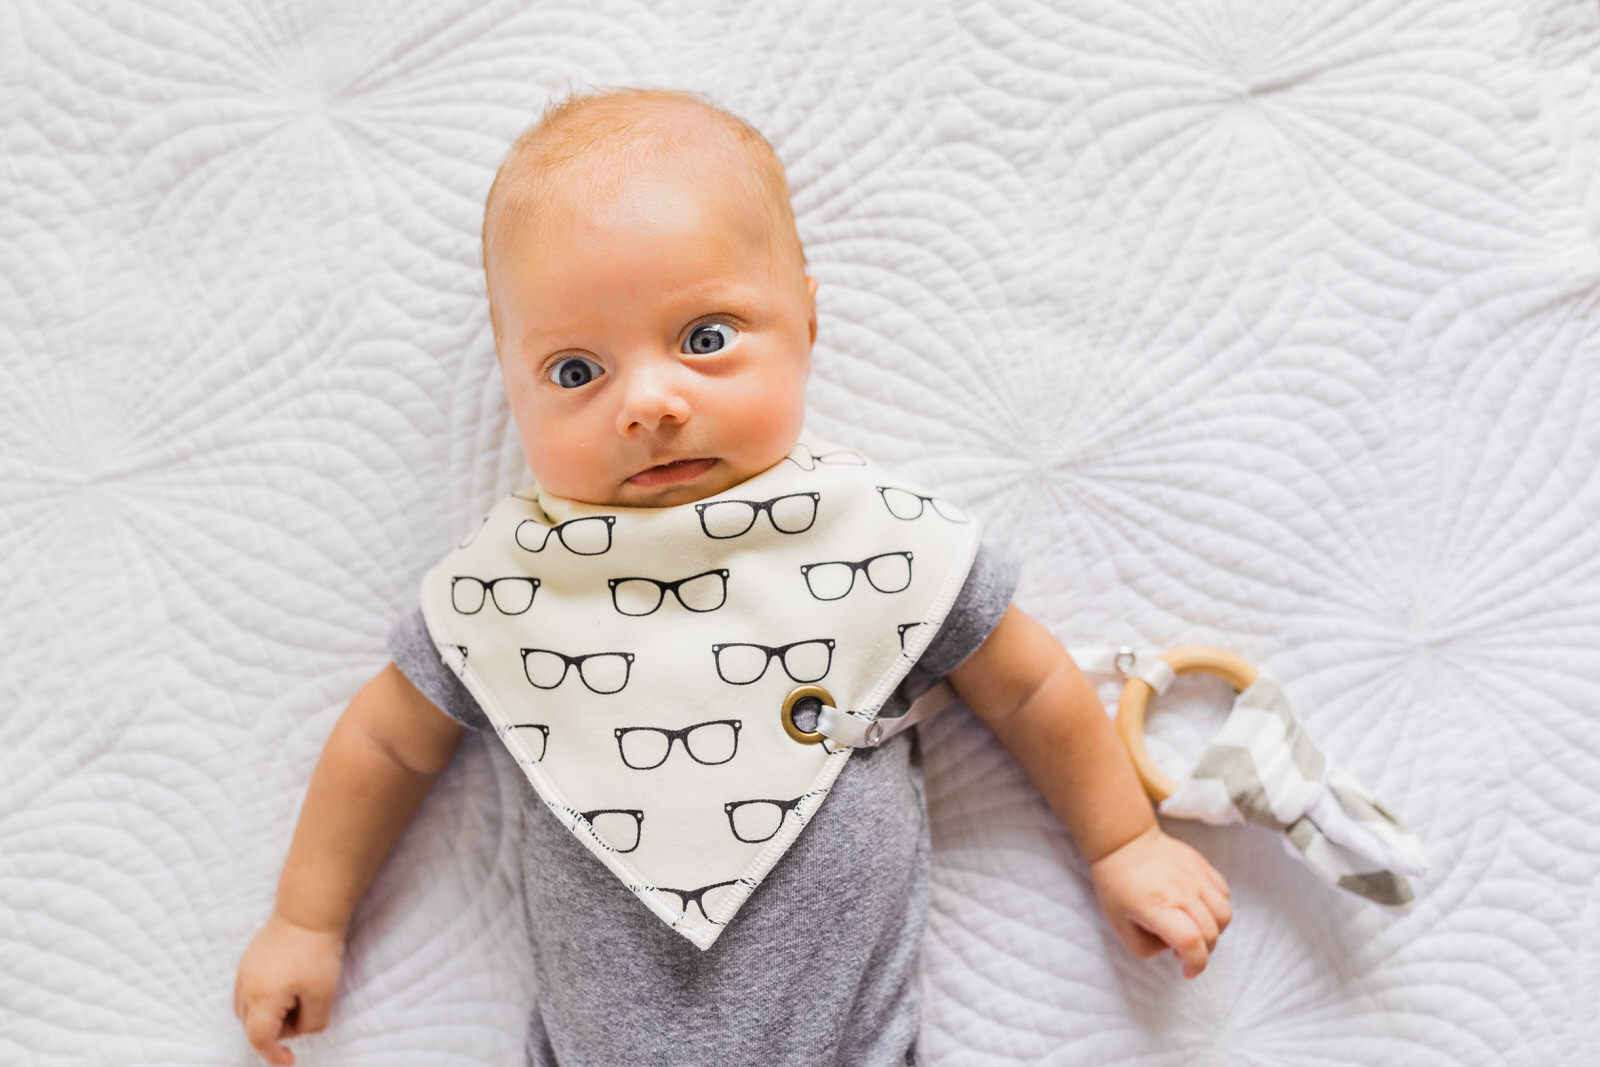 kids-clothes-small-business-baby-newborn-collaboration-7676.jpg